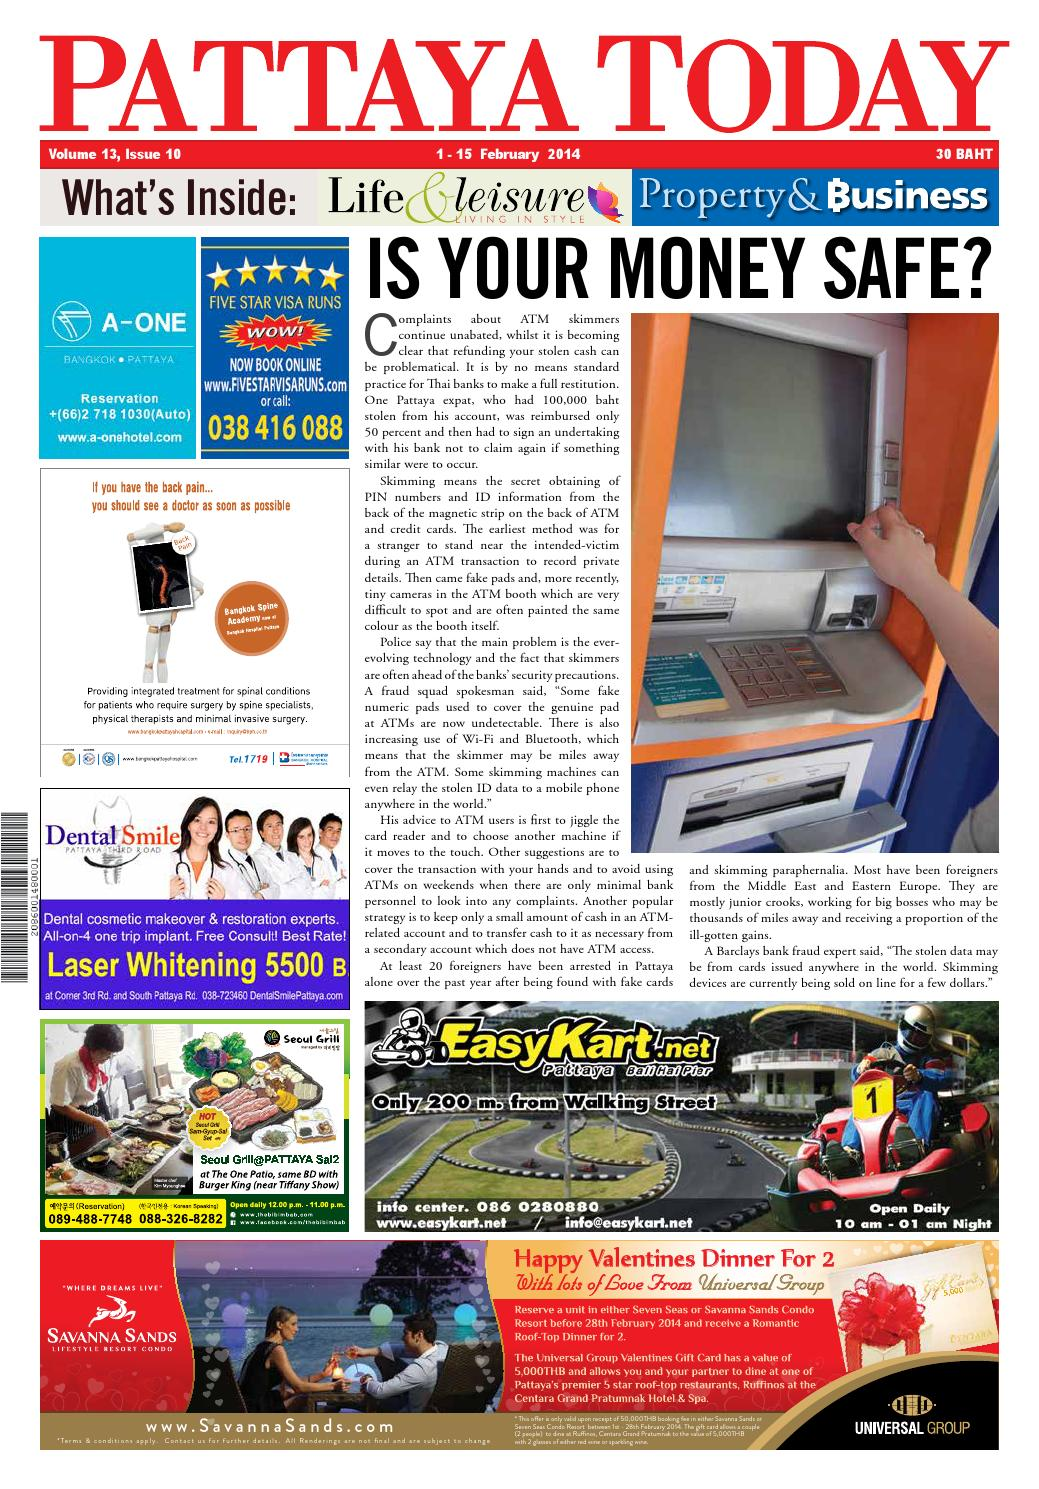 Vol 13 issue 10 1 15 february 2014 by Pattaya Today - issuu